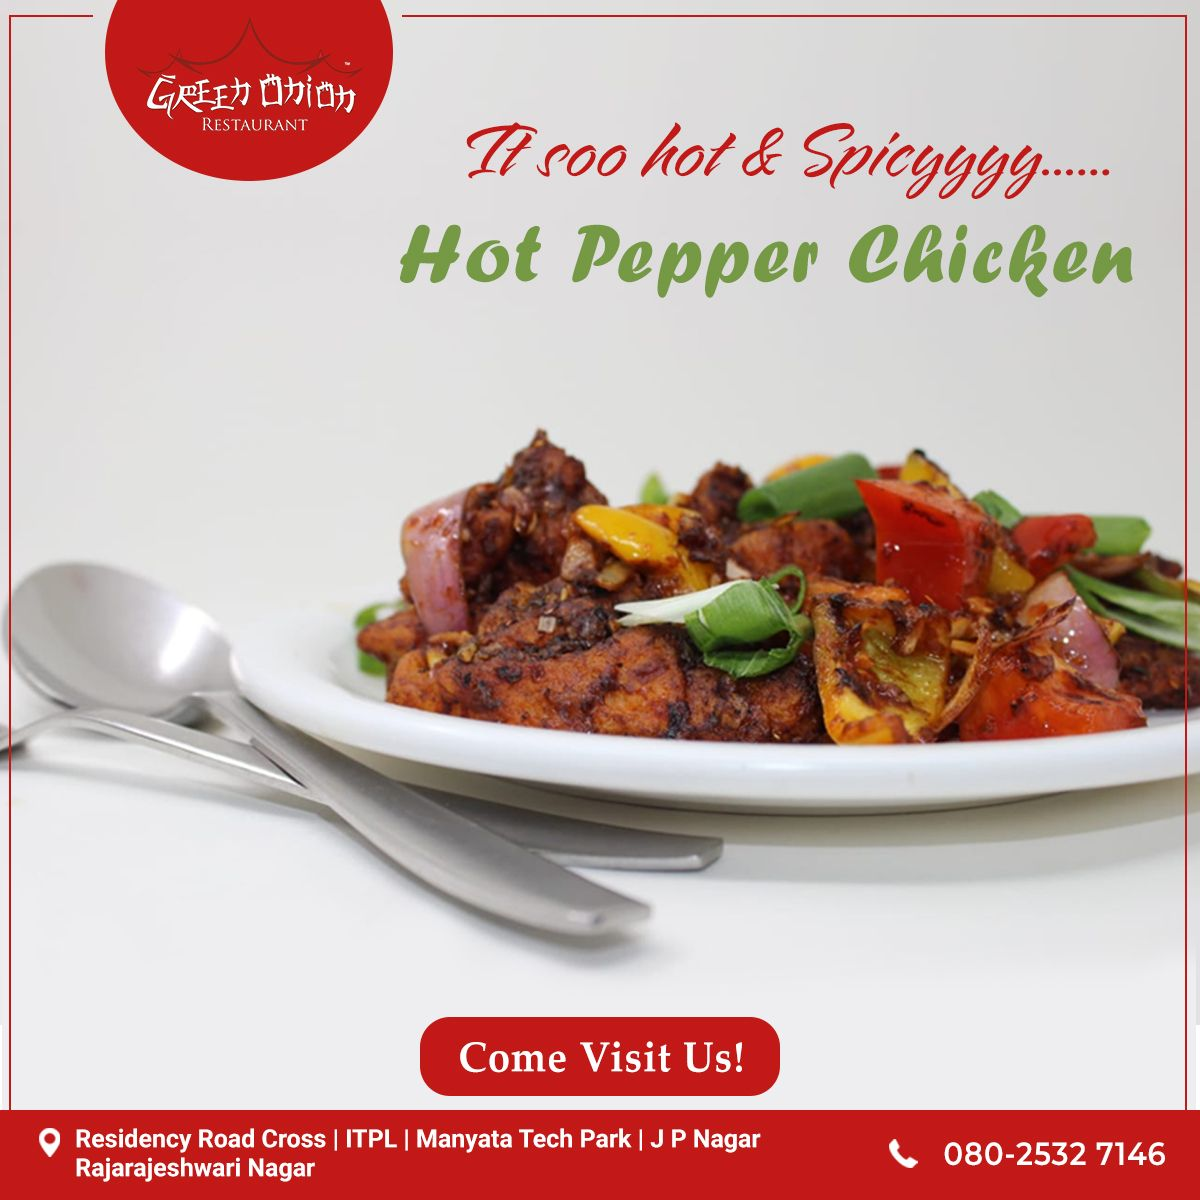 The Best Chinese Hot Pepper Chicken In Town Visit Our Nearest Green Onion Restaurant Along With Yo Stuffed Peppers Stuffed Hot Peppers Chicken Stuffed Peppers